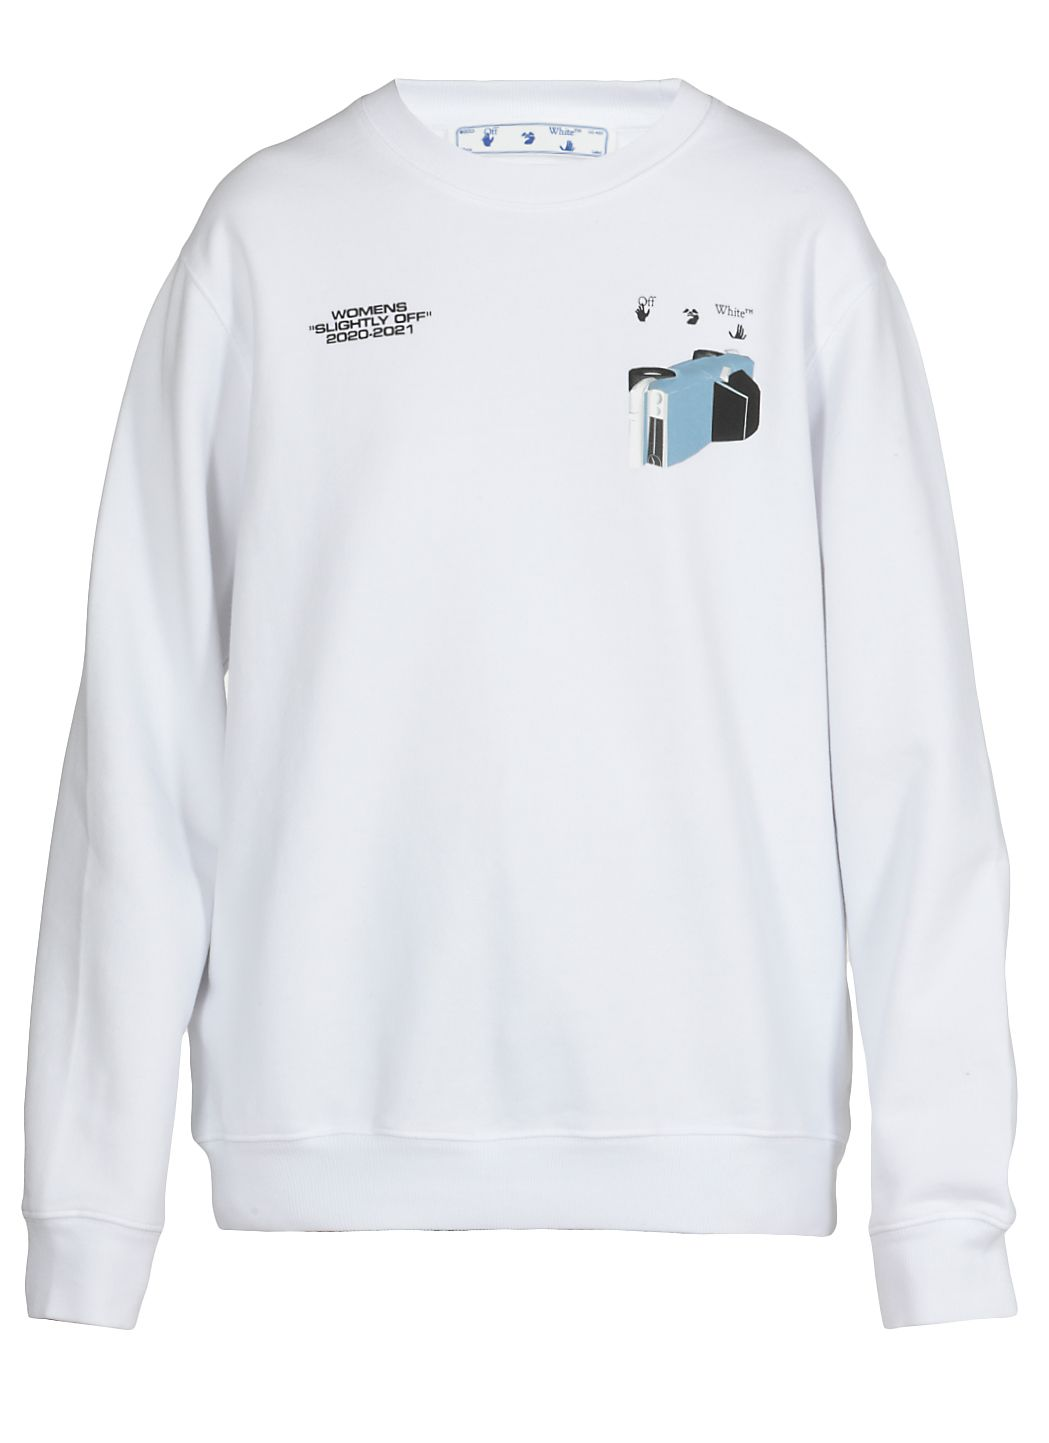 Cars Tee Collection sweatshirt